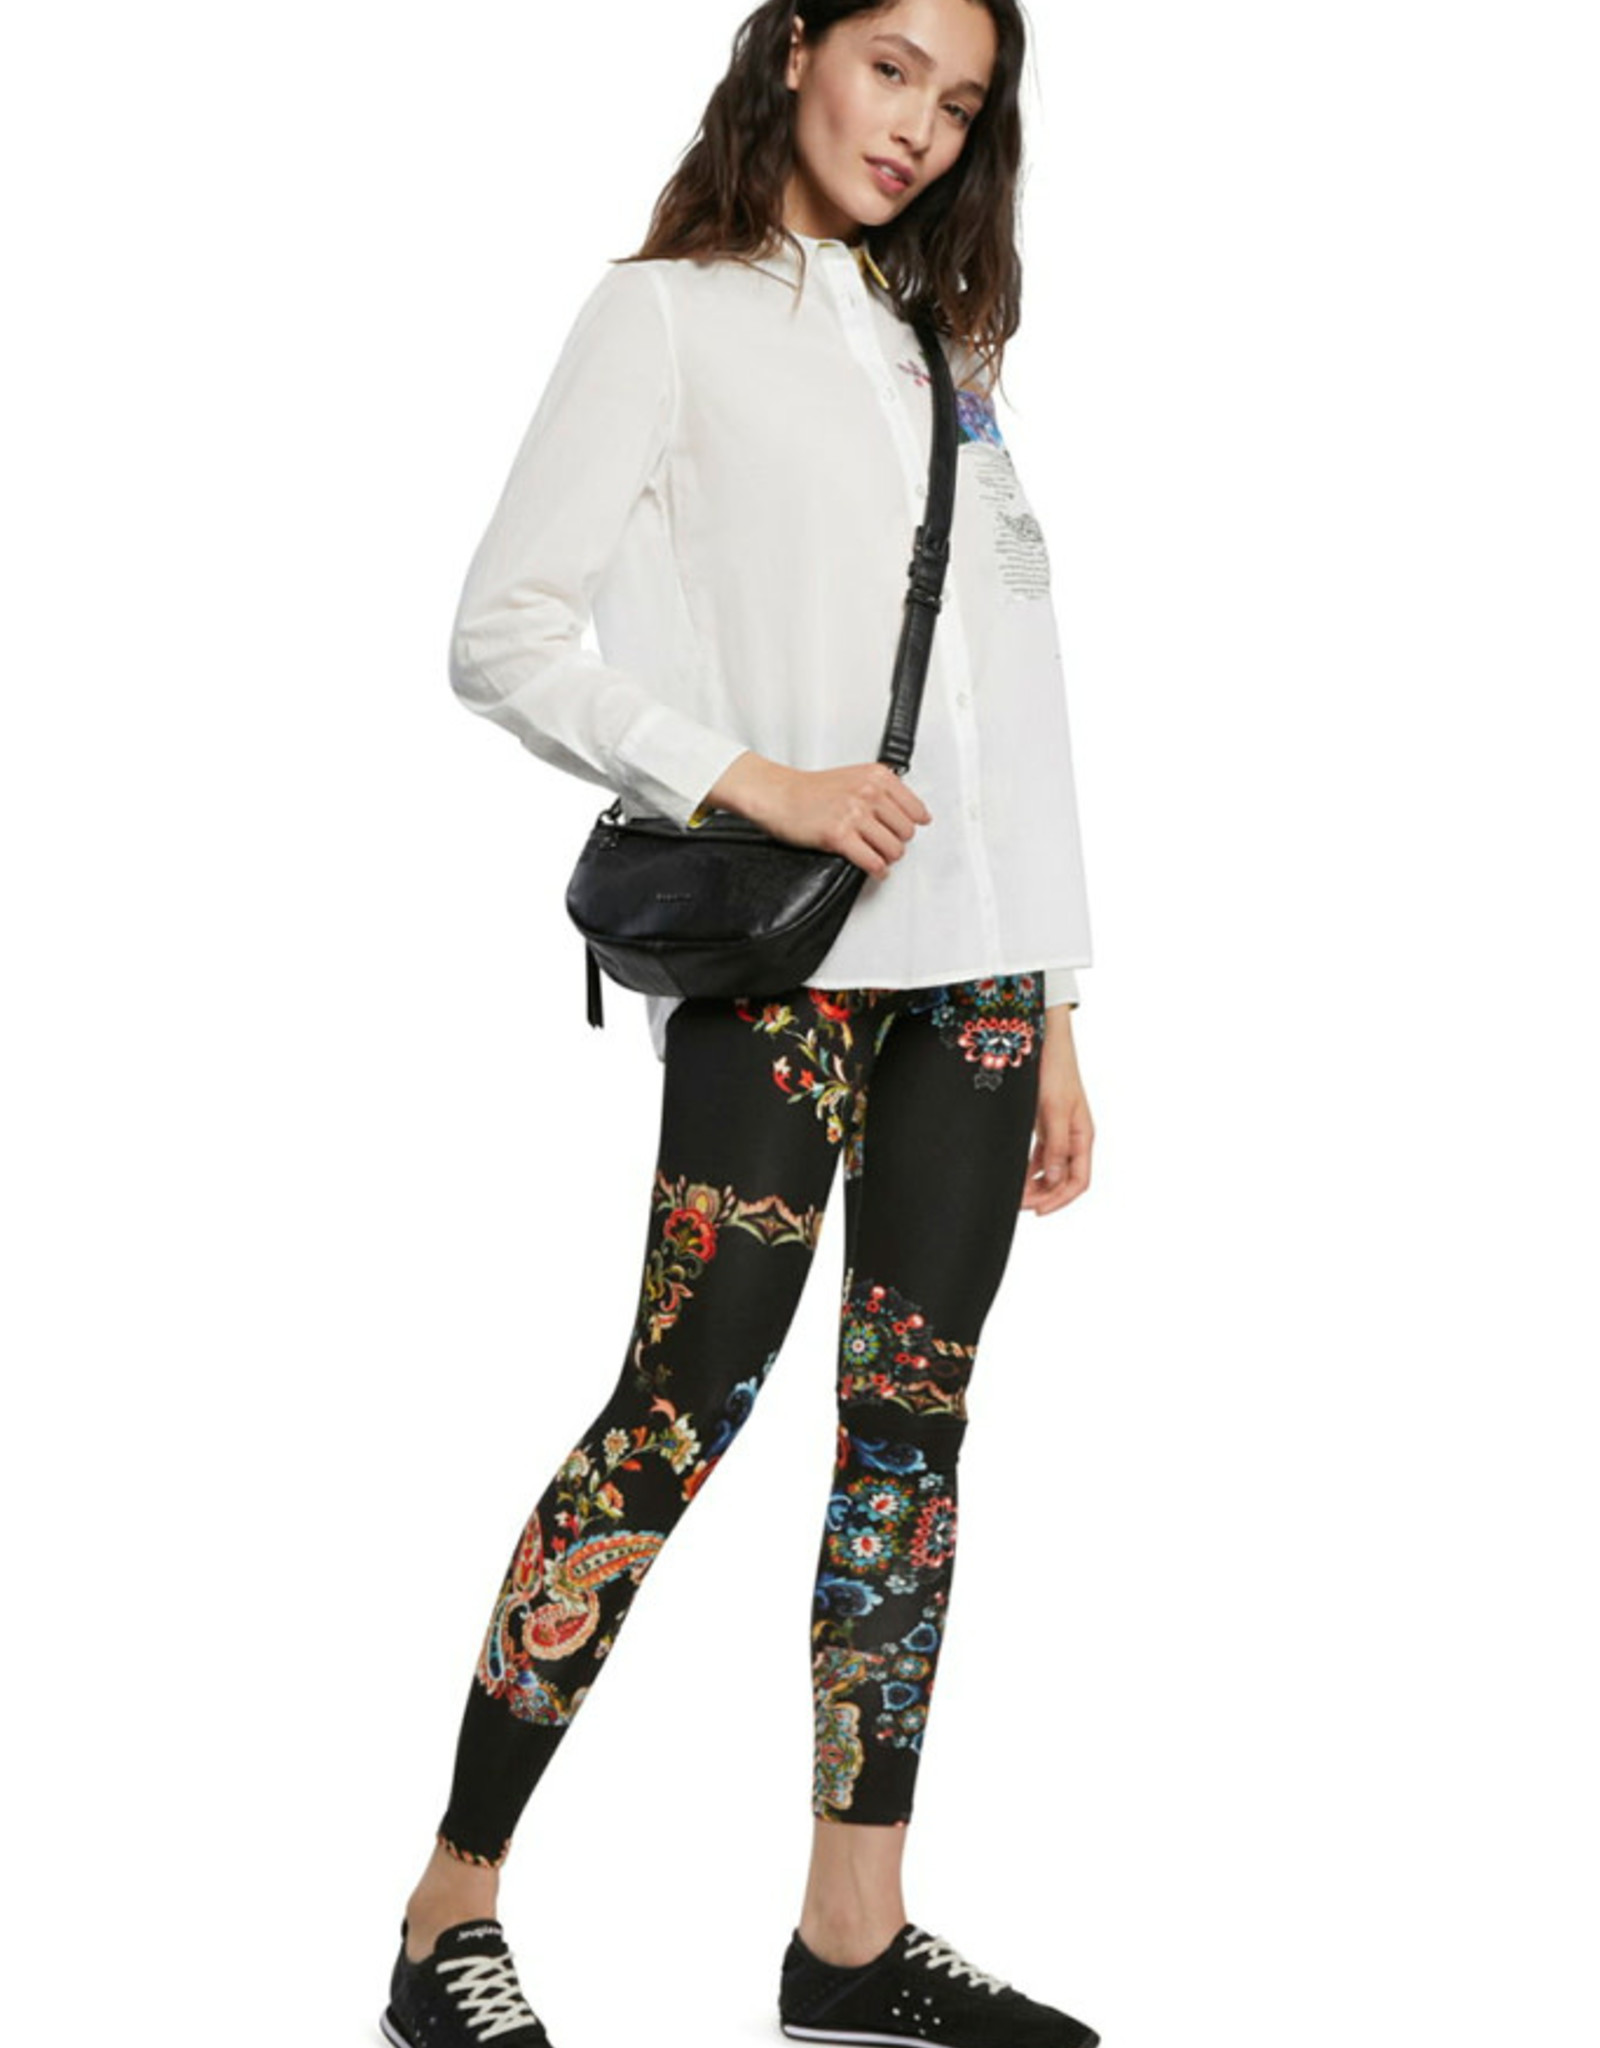 DESIG 21SWKK08 2000 Galactic Black Leggings